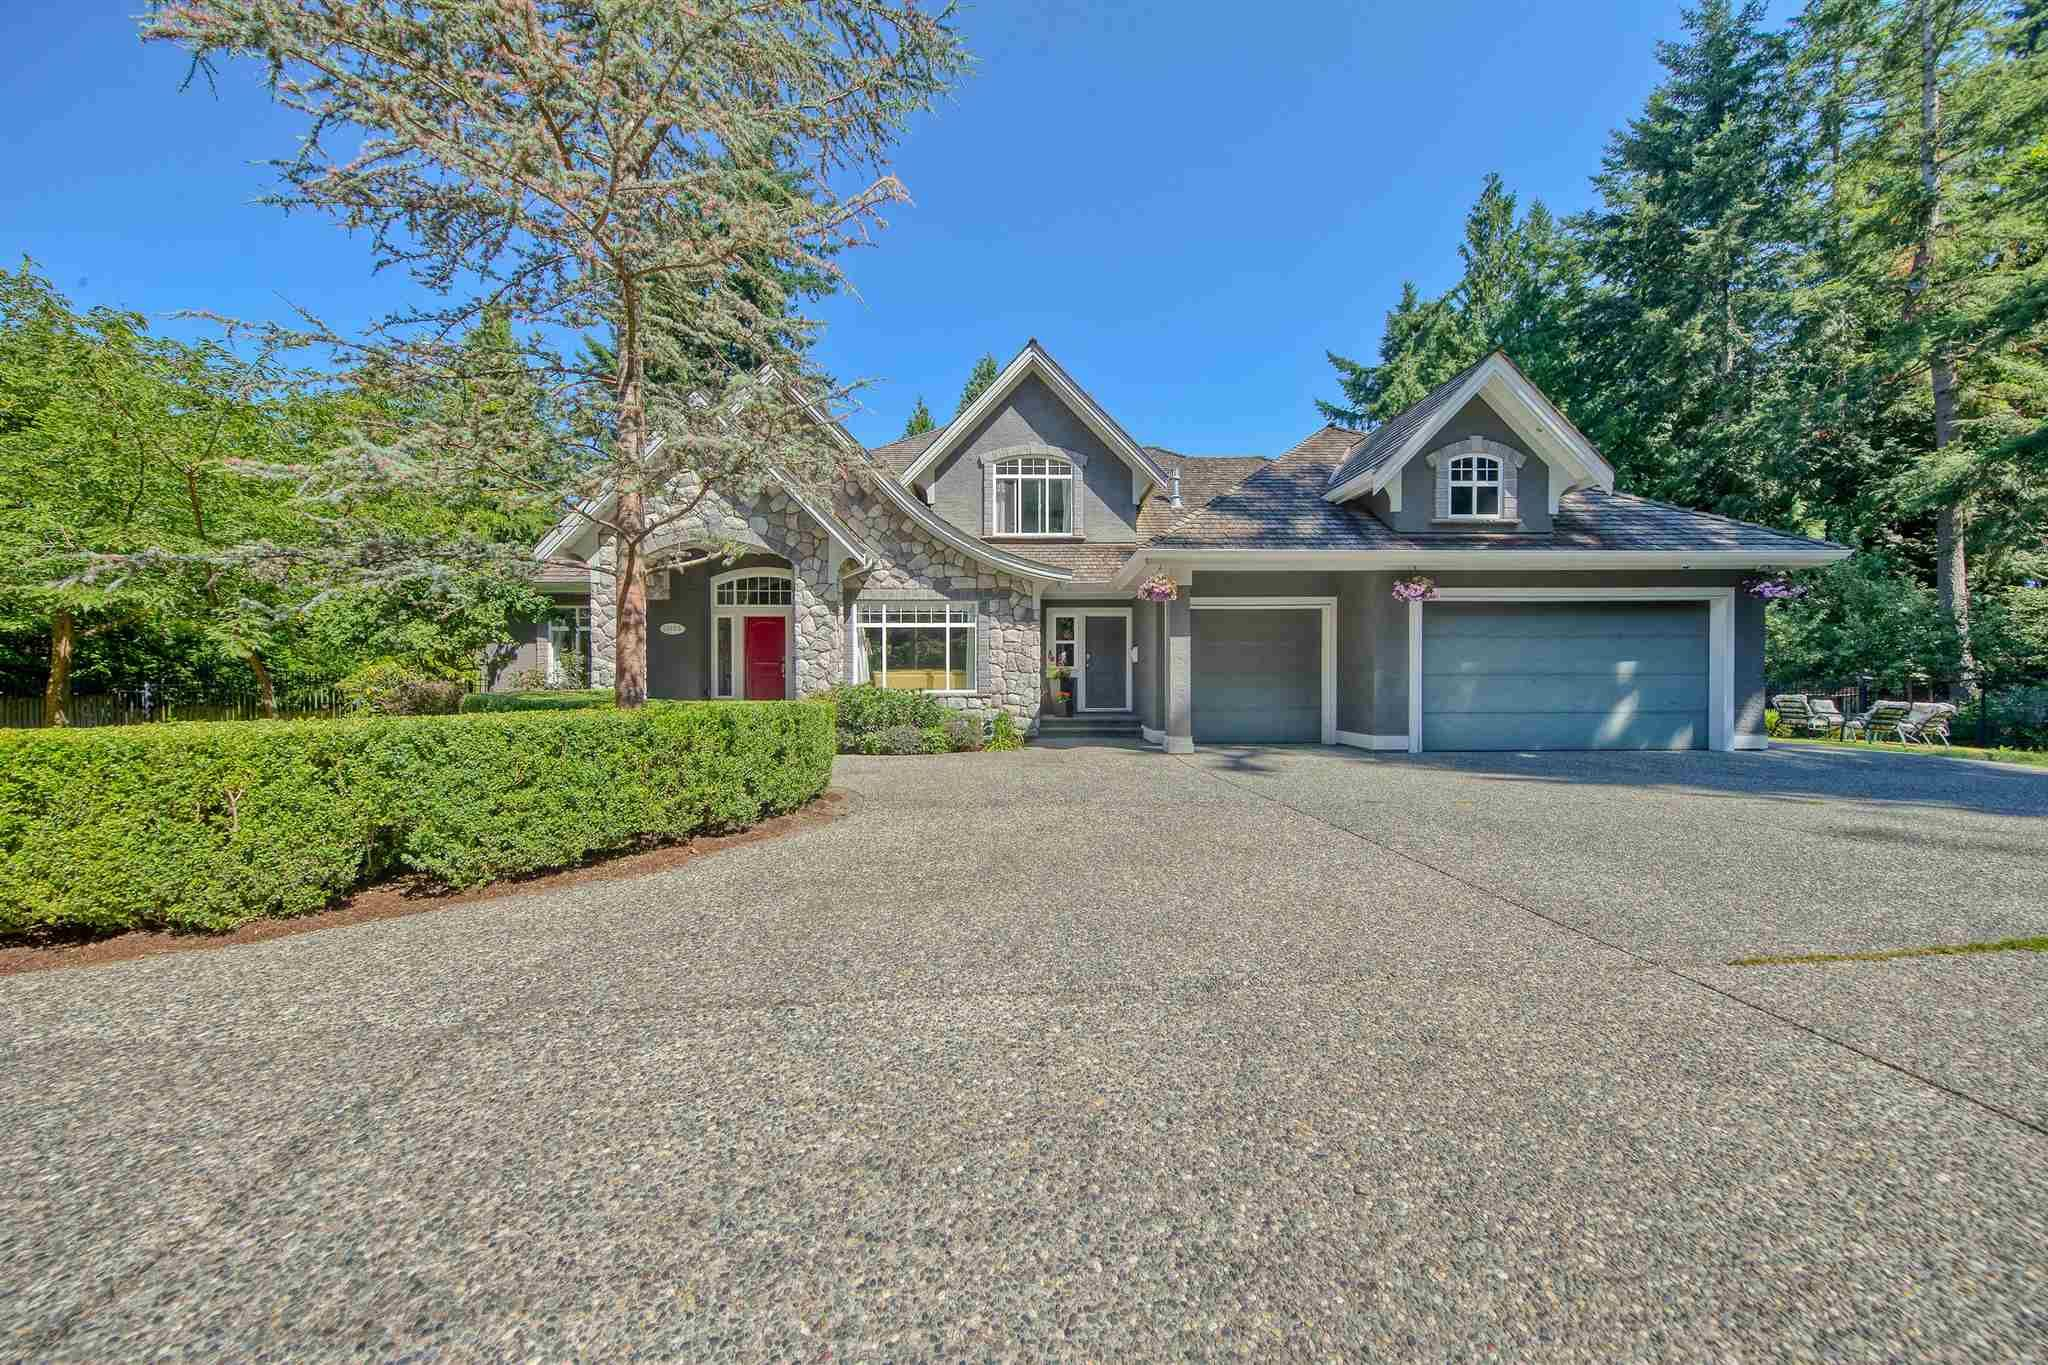 Main Photo: 14125 28 Avenue in Surrey: Elgin Chantrell House for sale (South Surrey White Rock)  : MLS®# R2601177